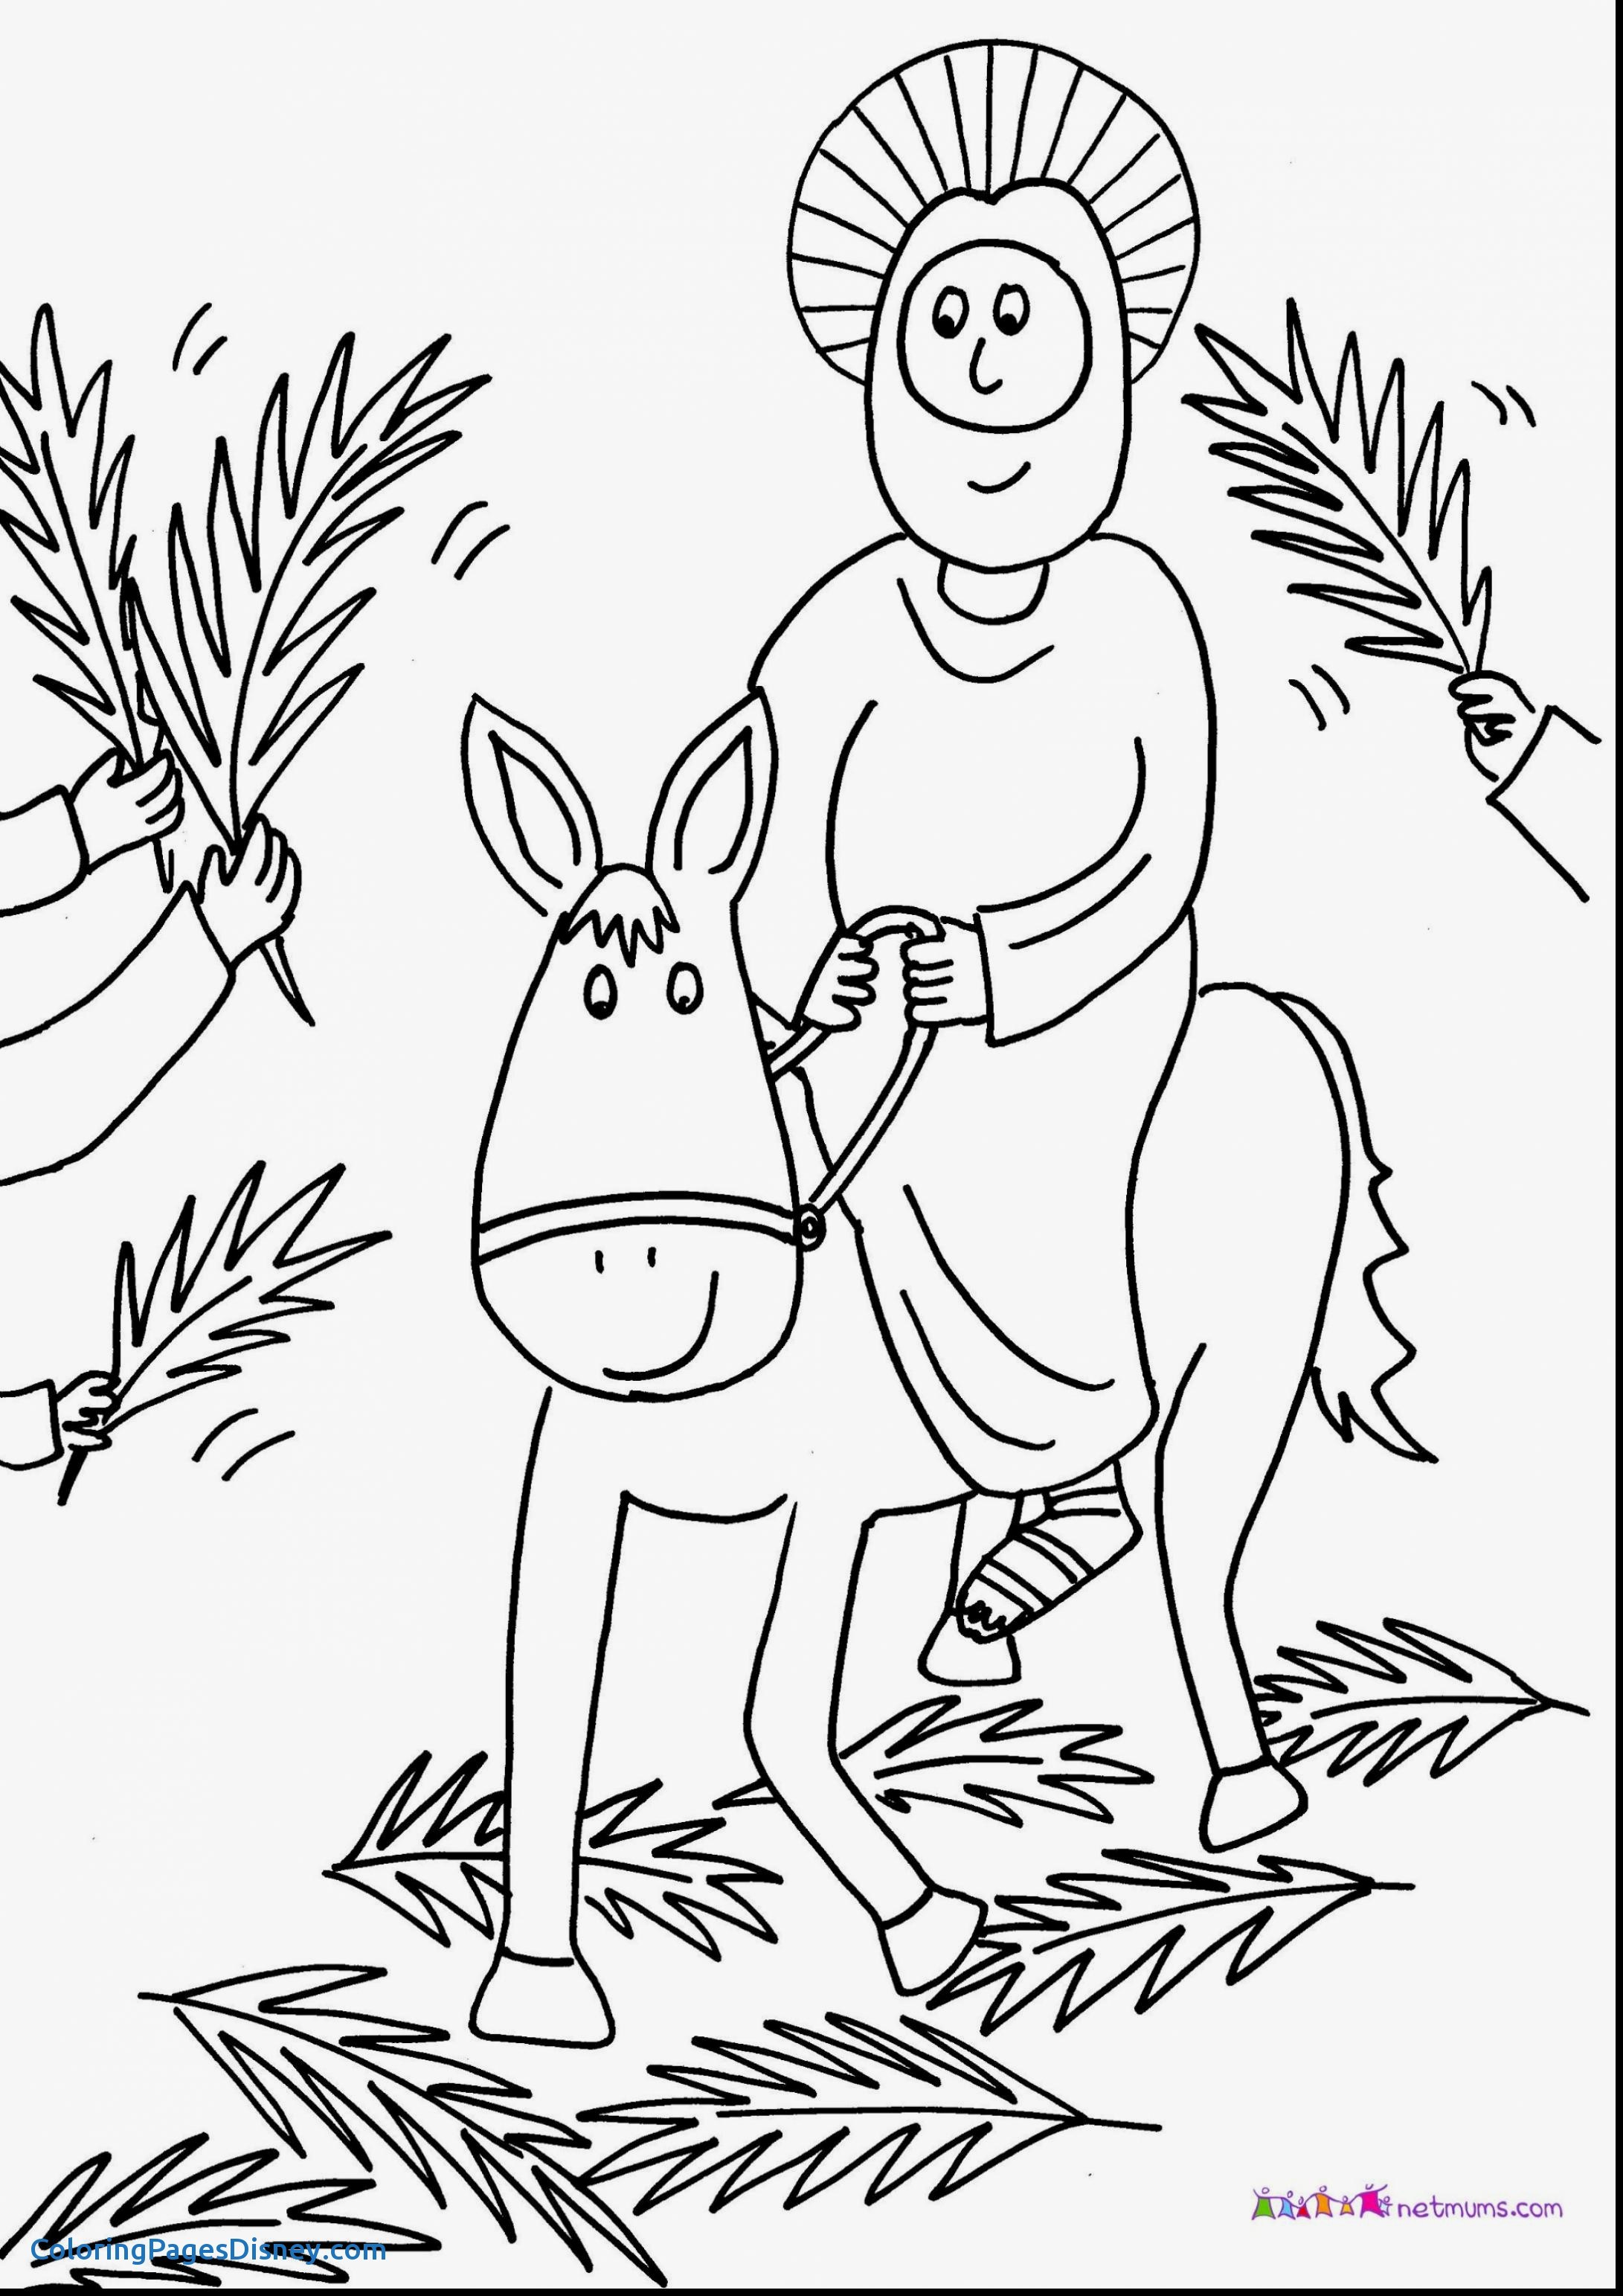 free christian easter coloring pages easter colouring religious easter coloring picture pages christian coloring easter free